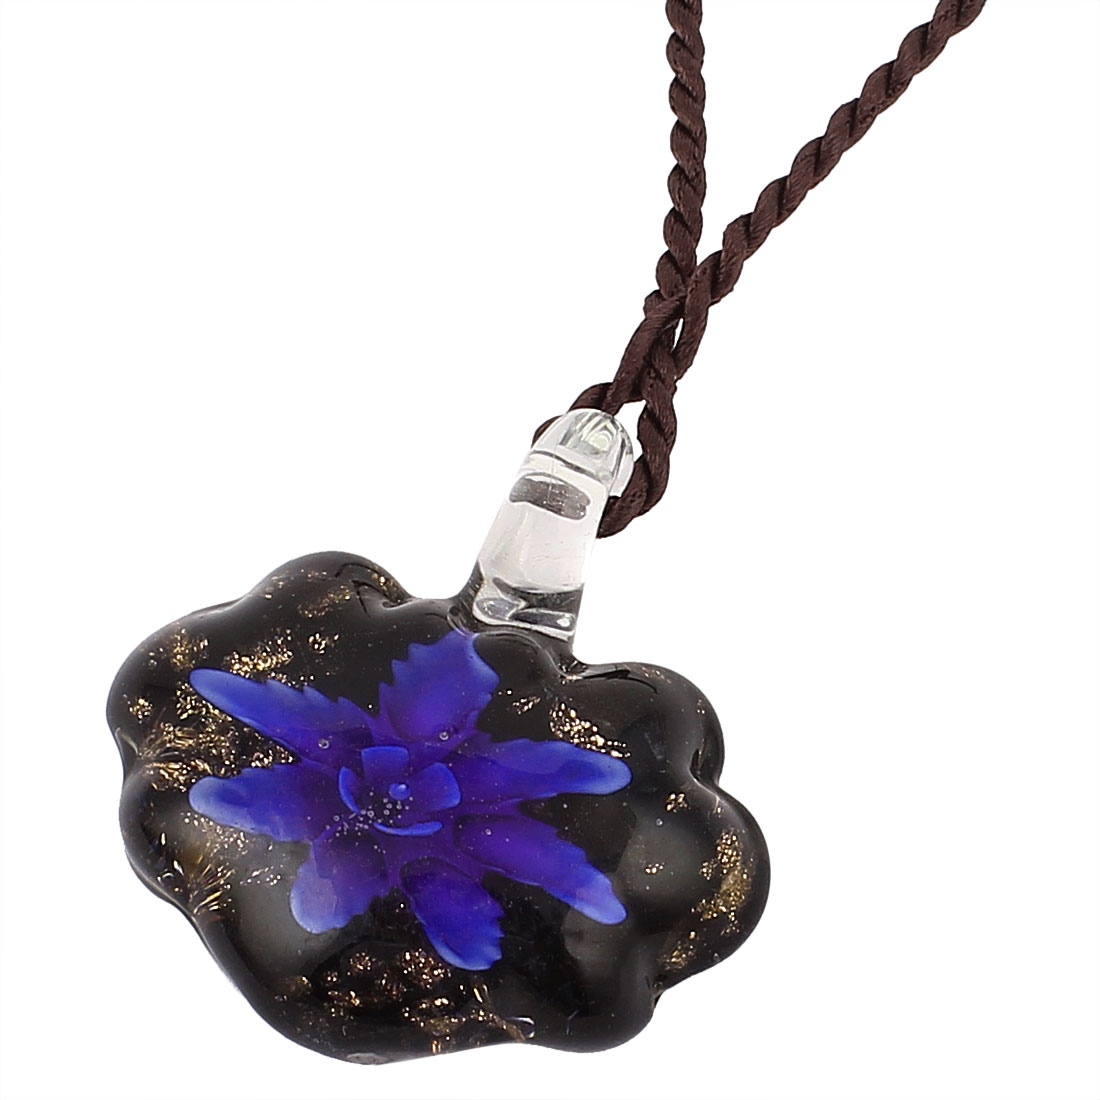 Glass Bundle Flower Inlaid Pendant Necklace Purple Black 17""